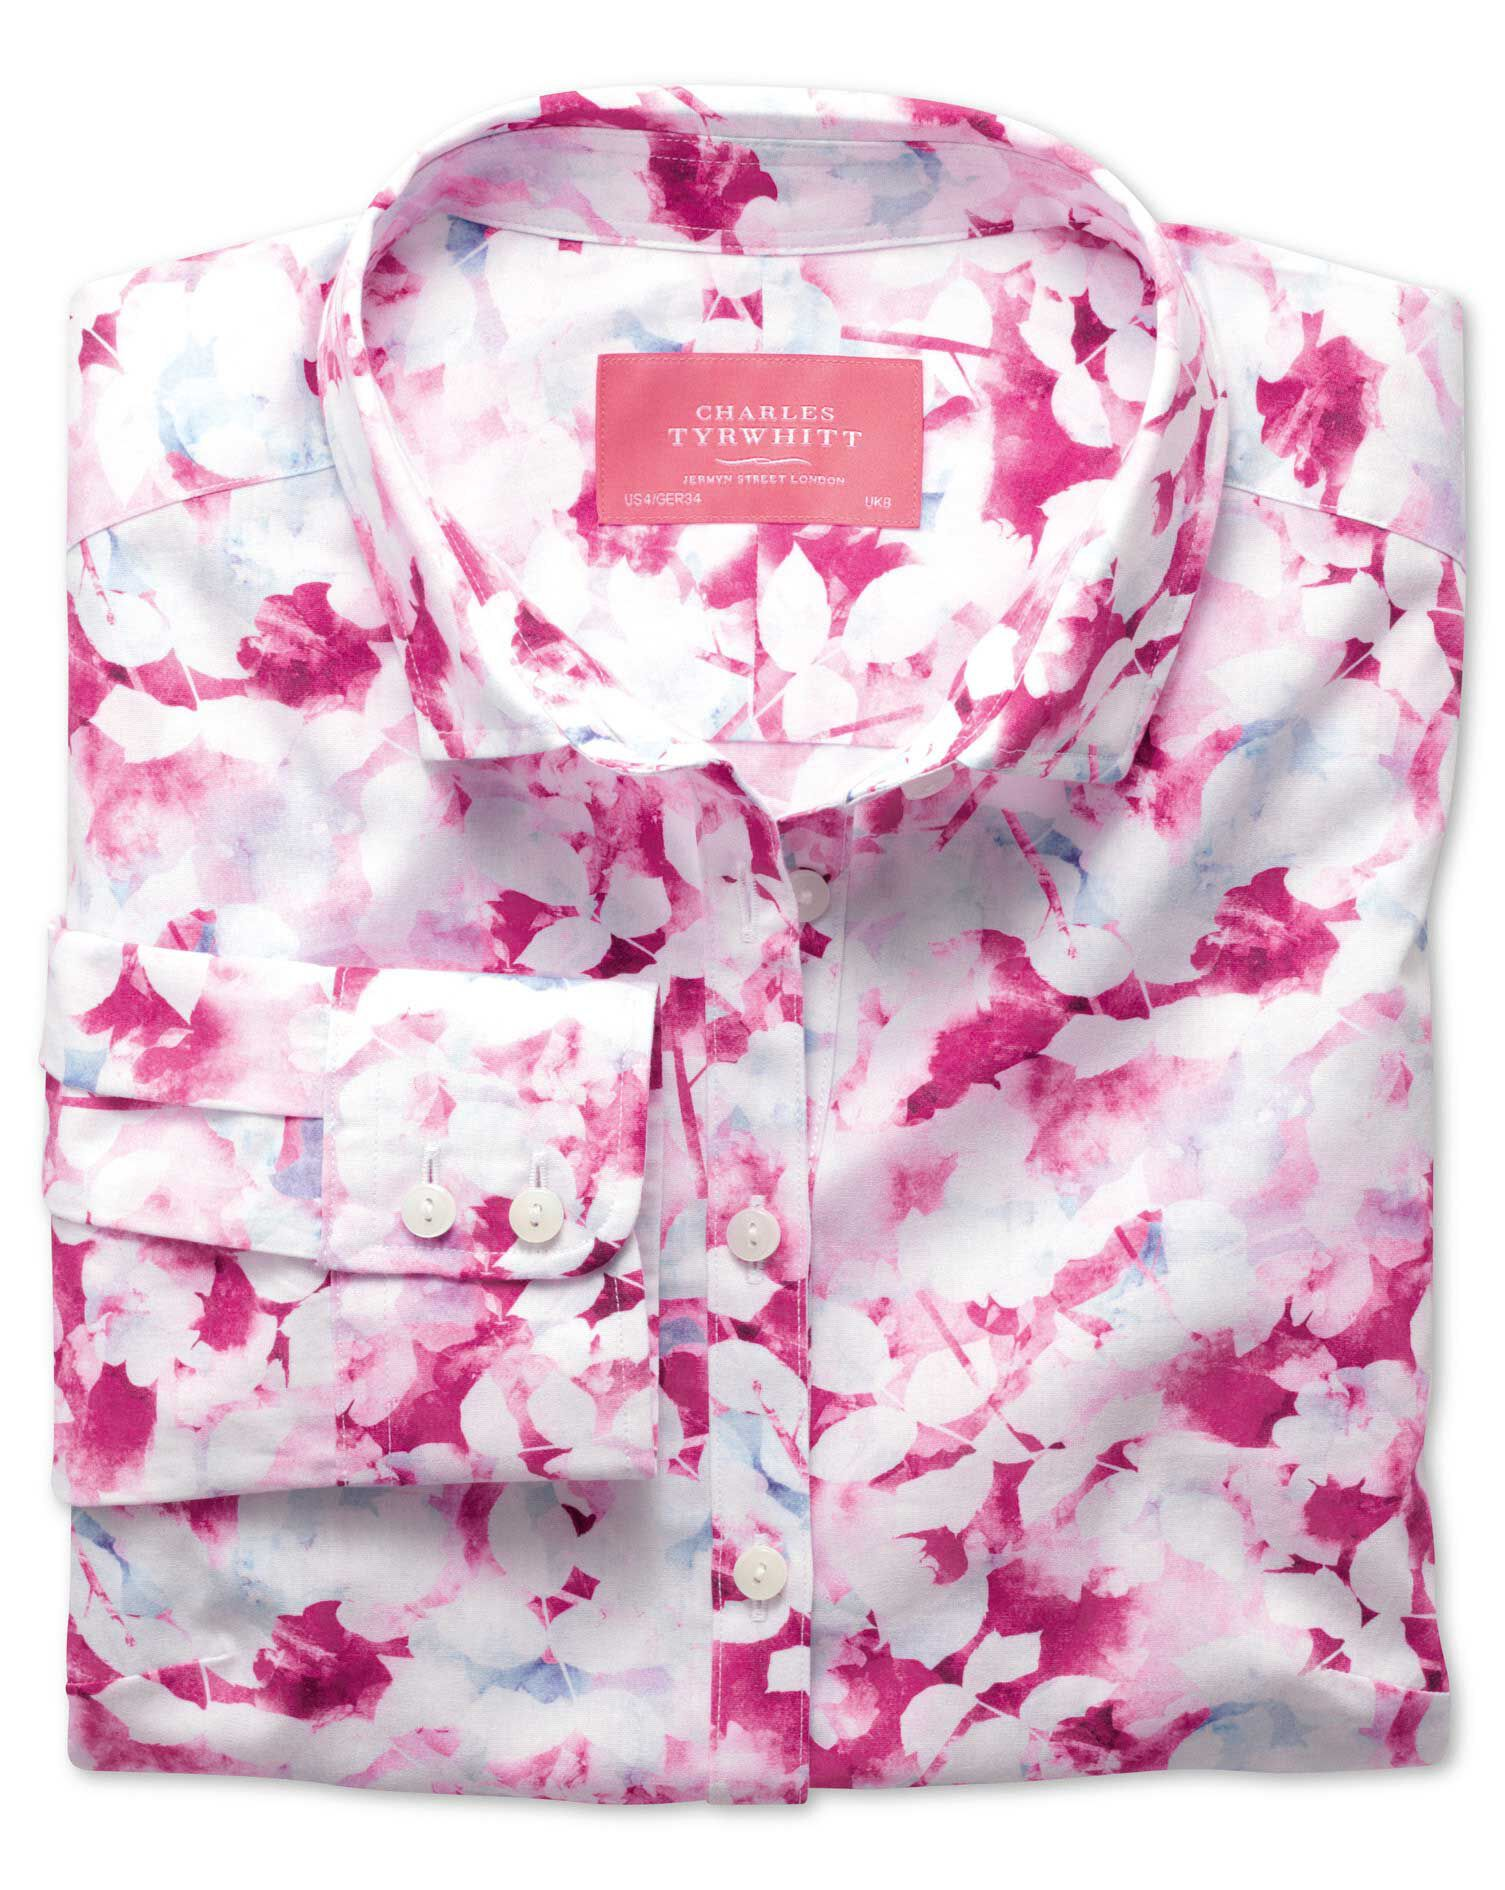 Women's Semi-Fitted Cotton Poplin Pink Multi Watercolour Shirt Size 12 by Charles Tyrwhitt